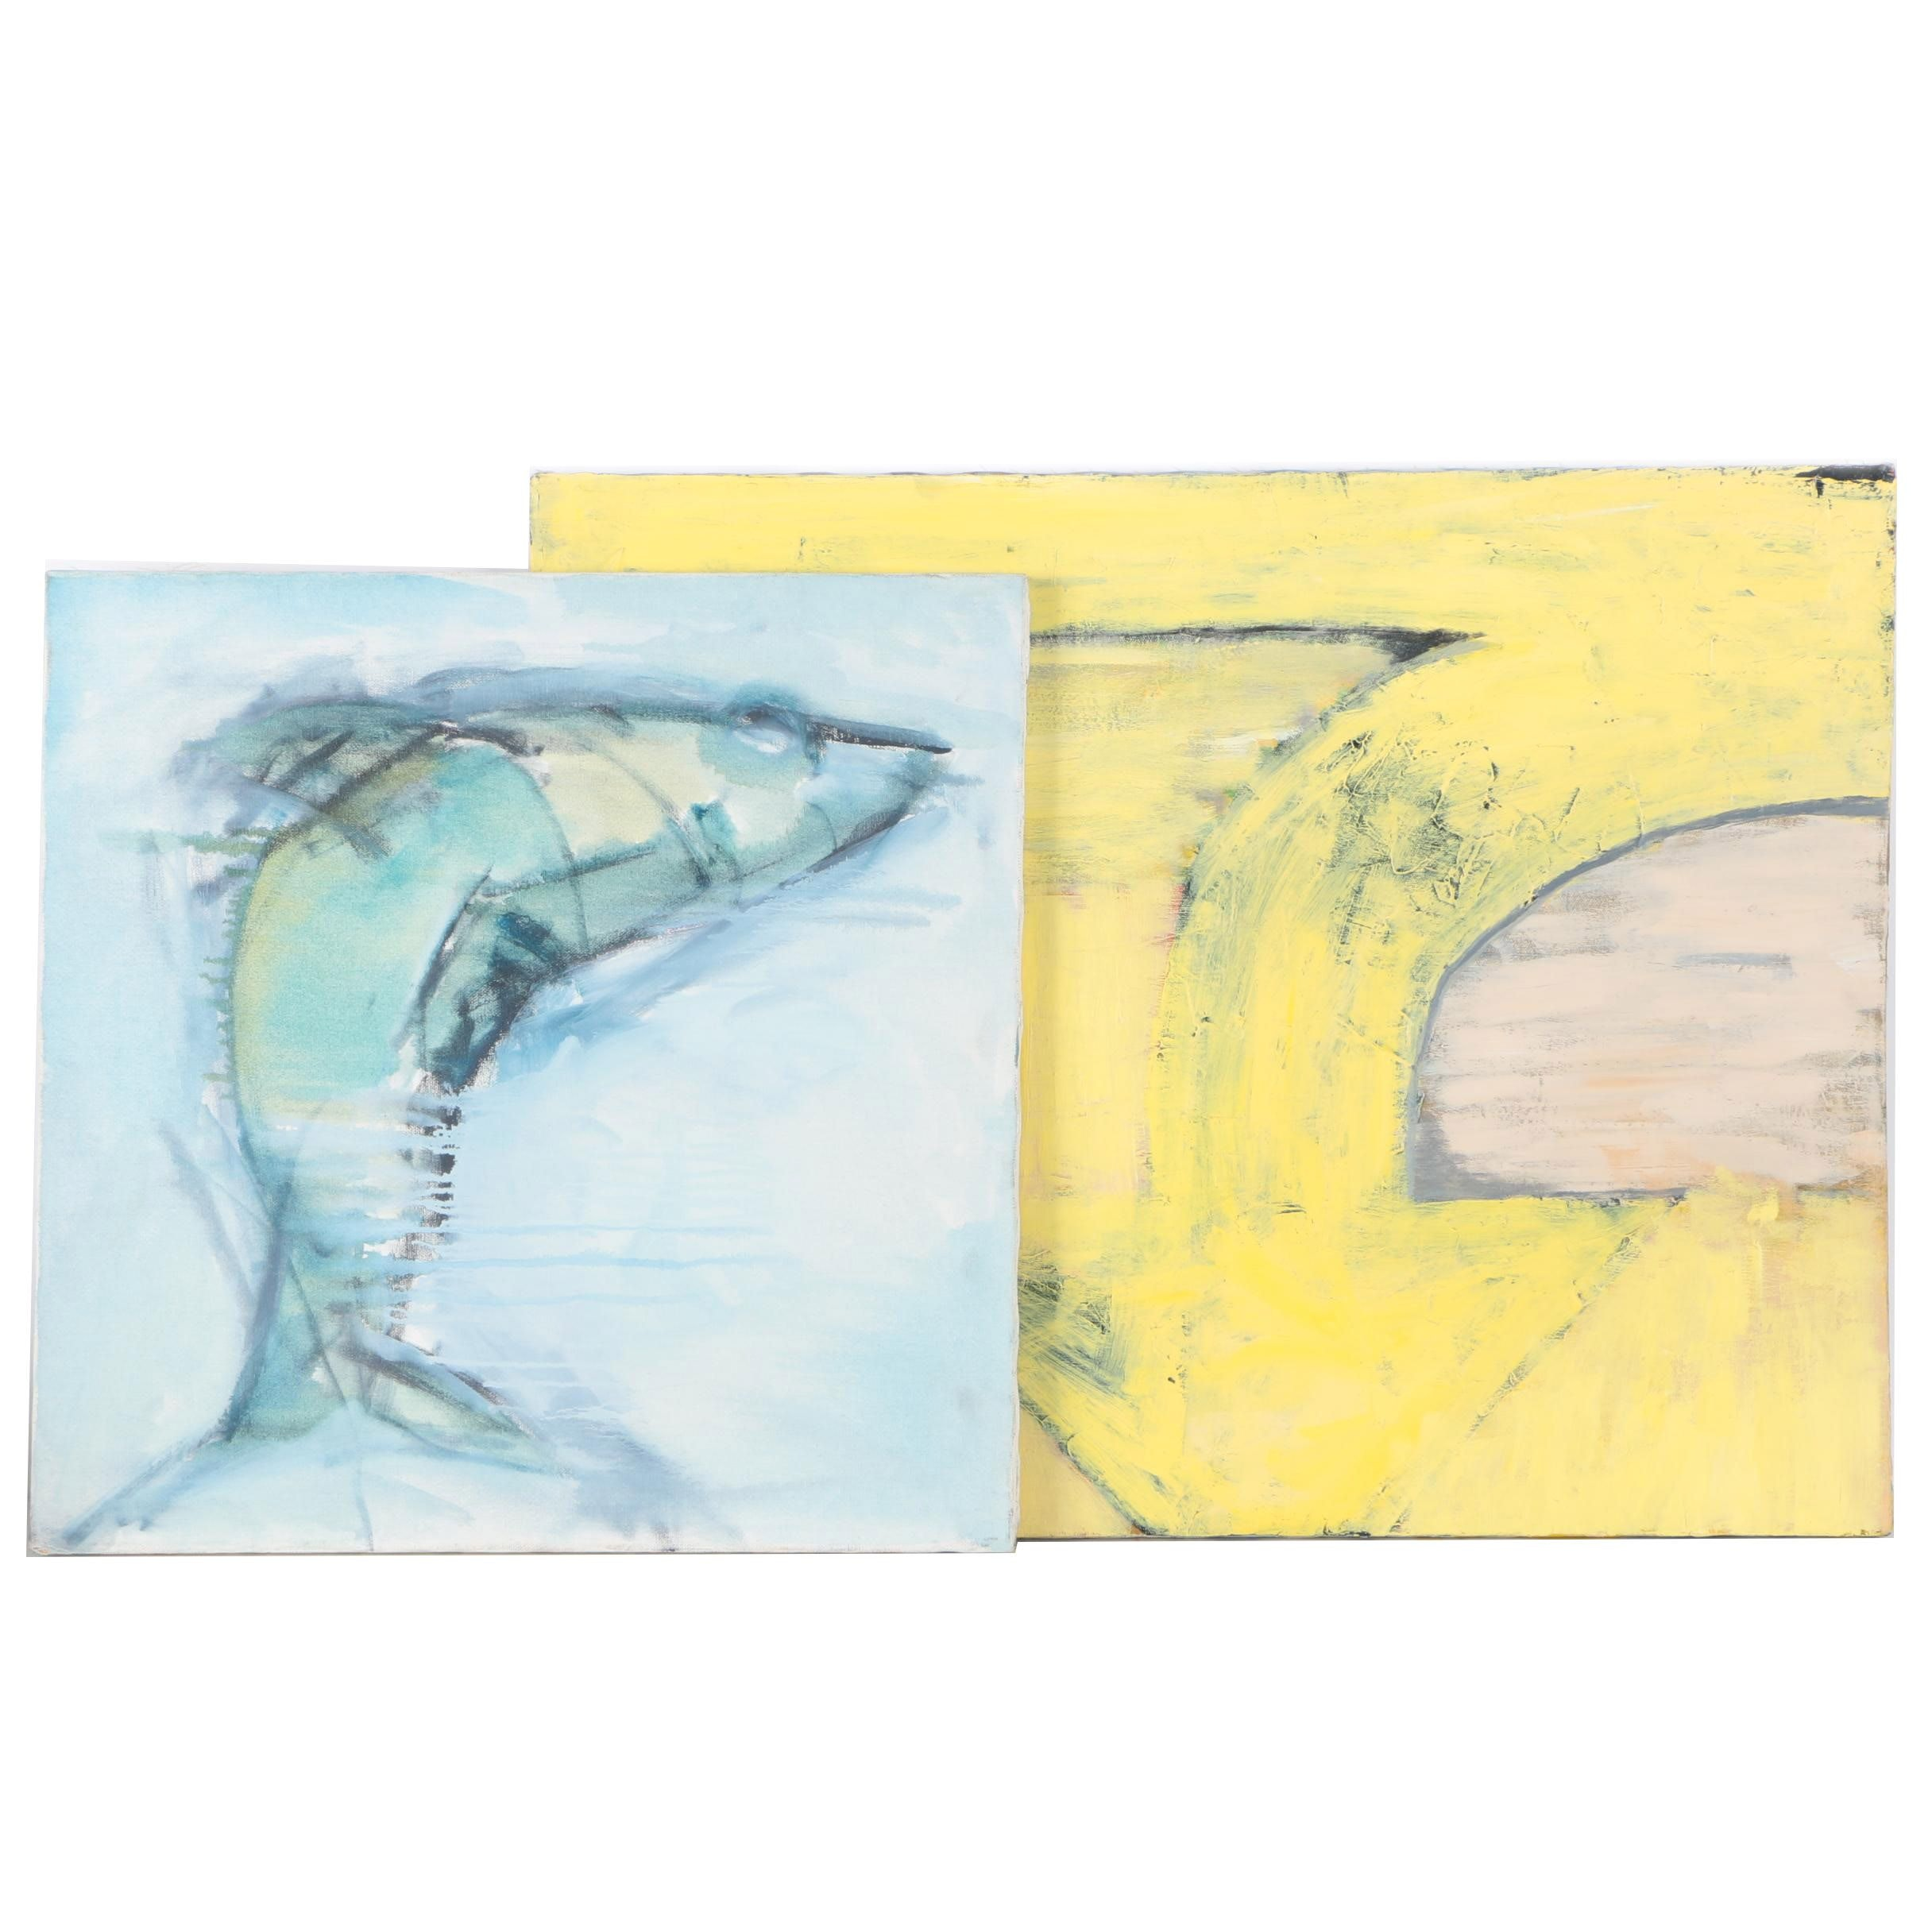 Acrylic Paintings on Canvas of Abstract Forms